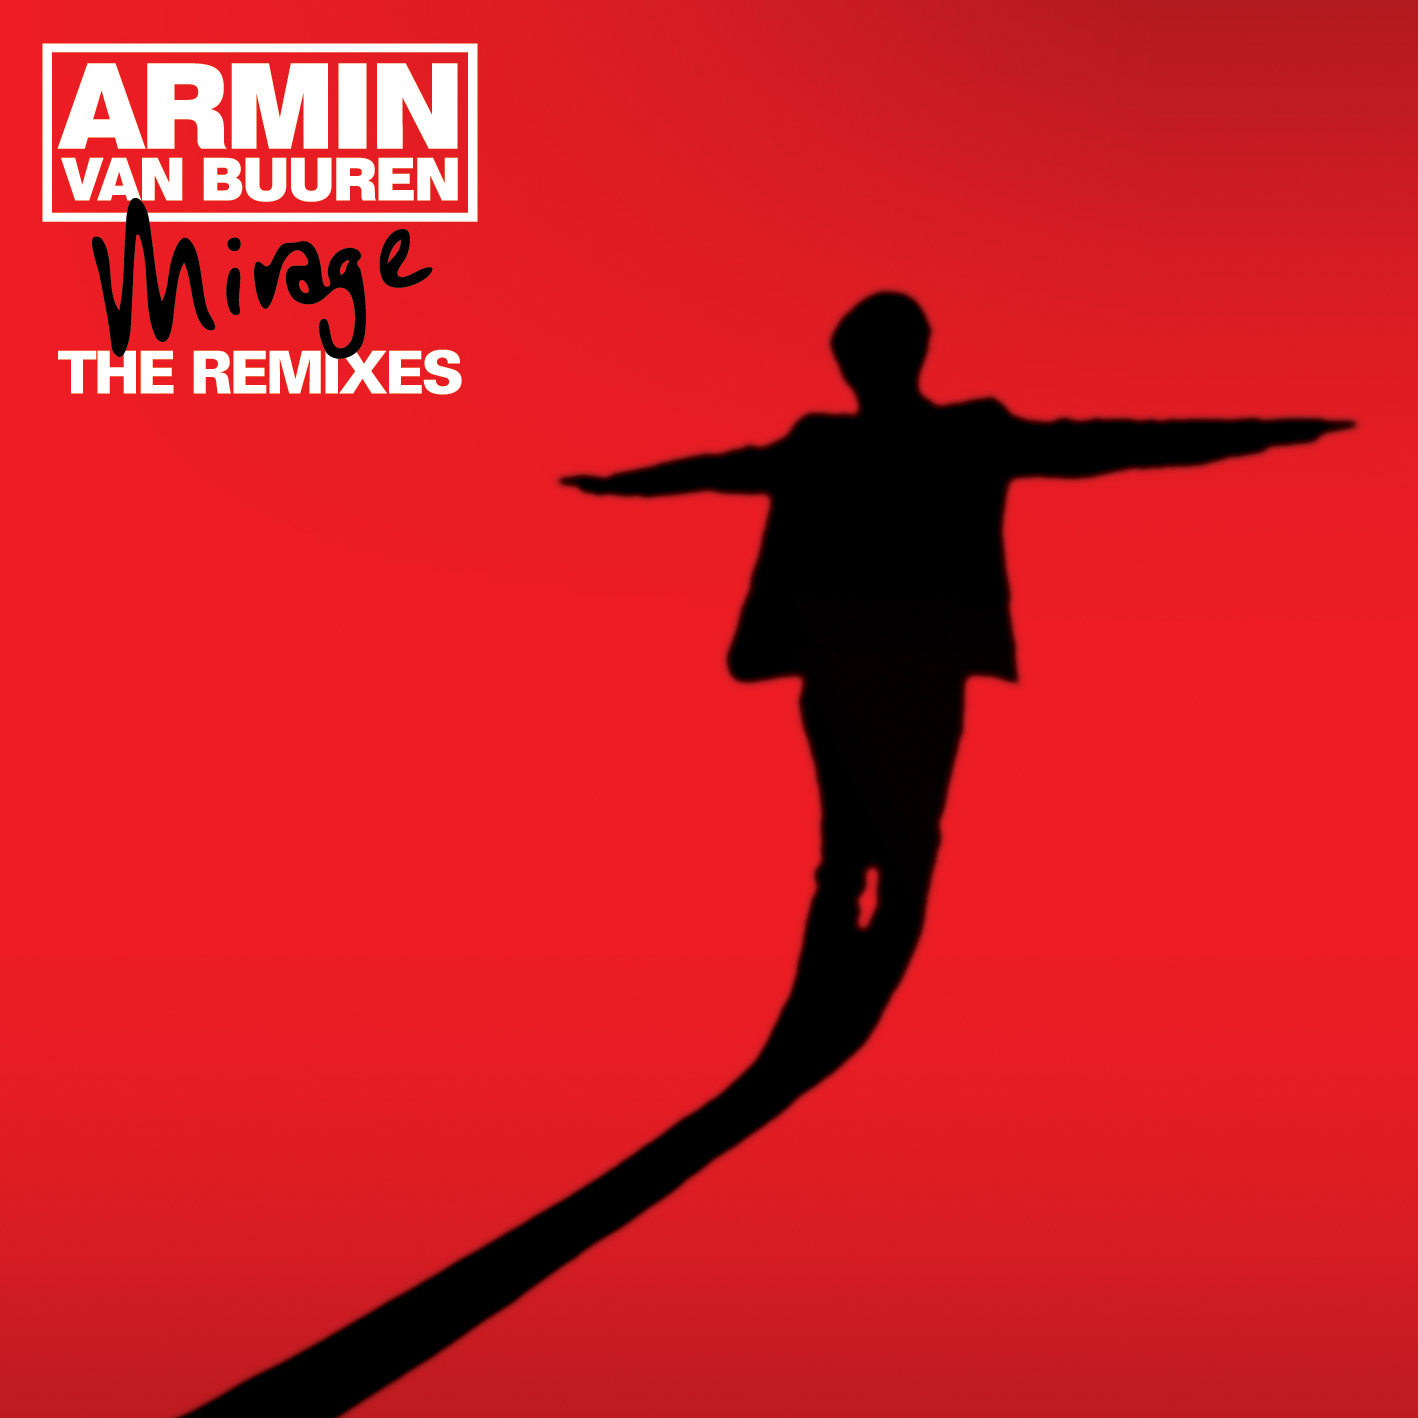 Armin van Buuren – Mirage (The Remixes)